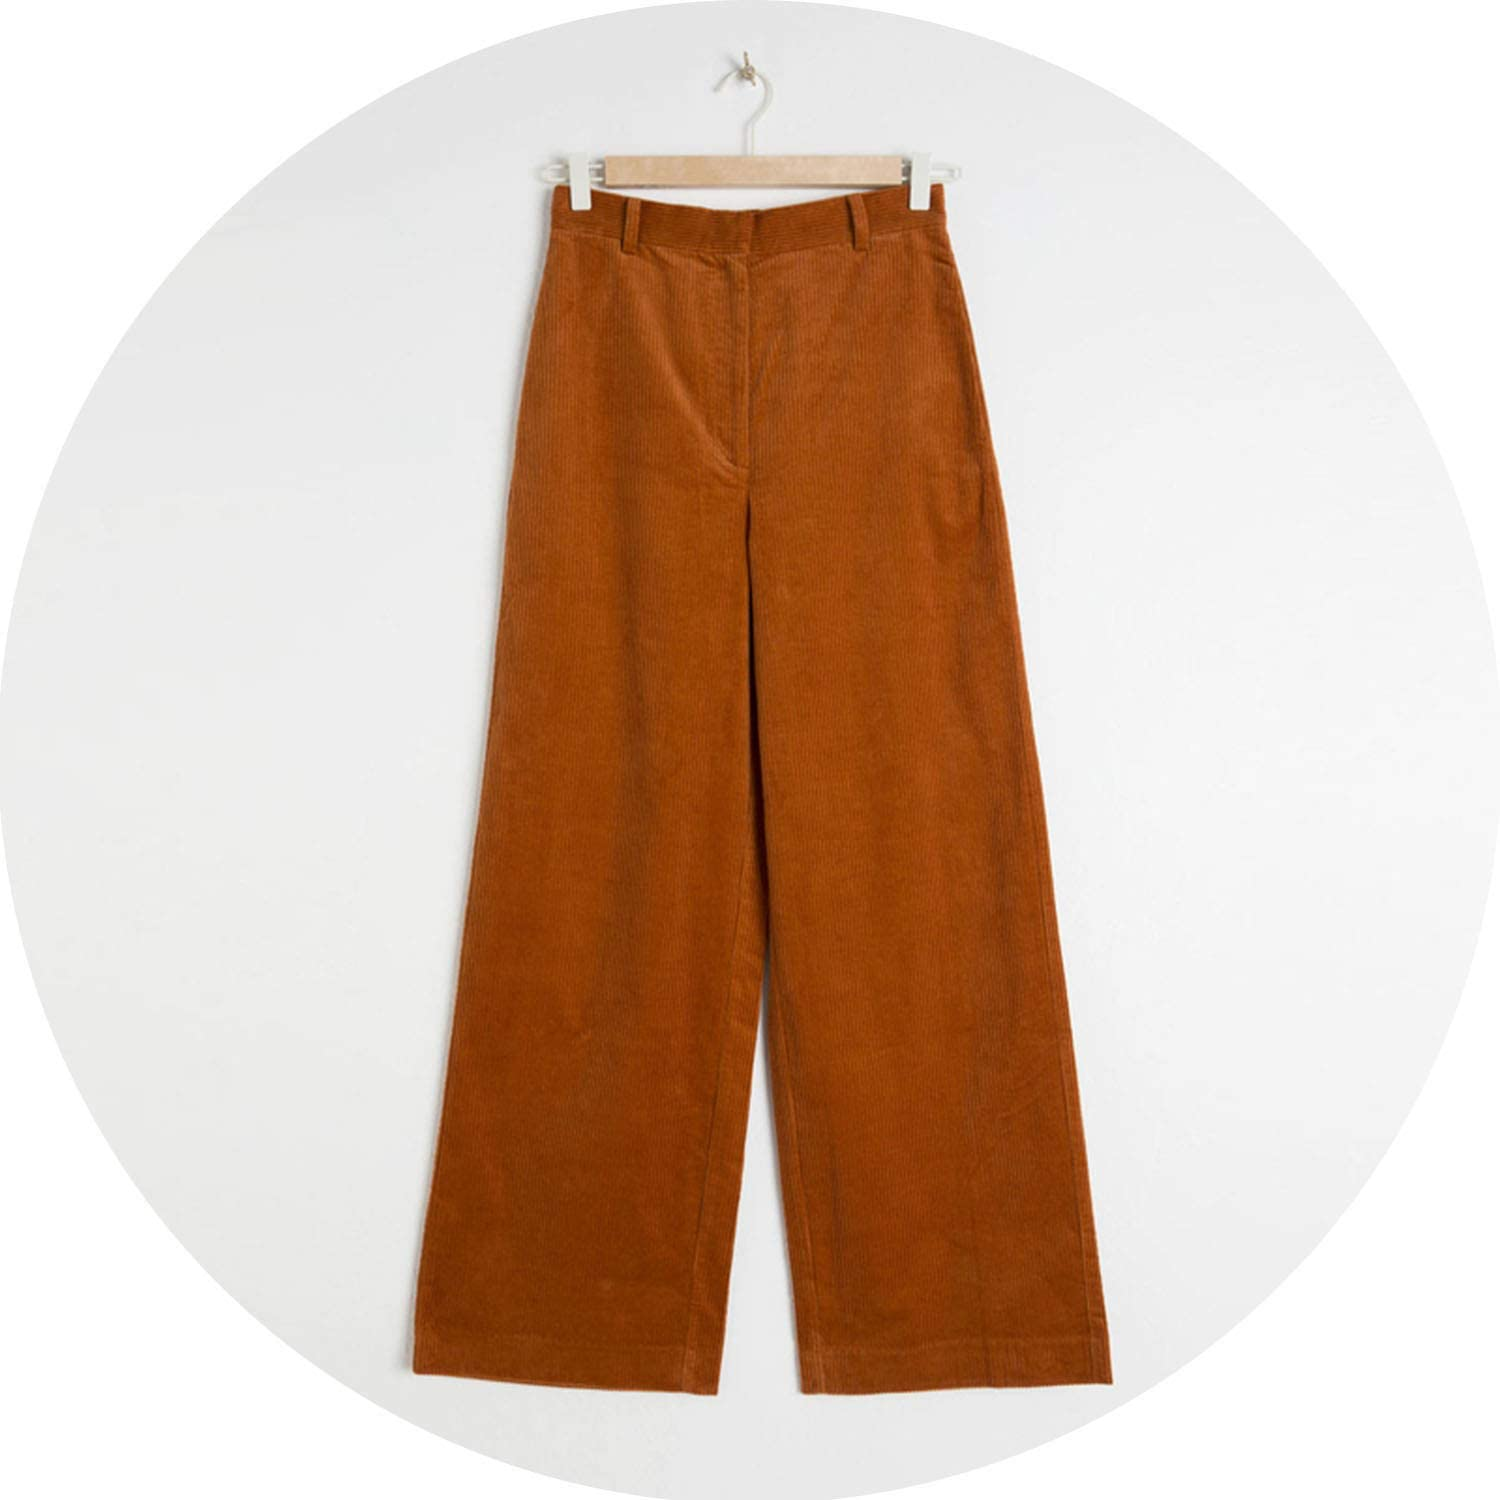 Can't be satisfied Autumn Corduroy Wide Leg Pants Office Trousers Casual Flat Mid Solid Women Pantspants